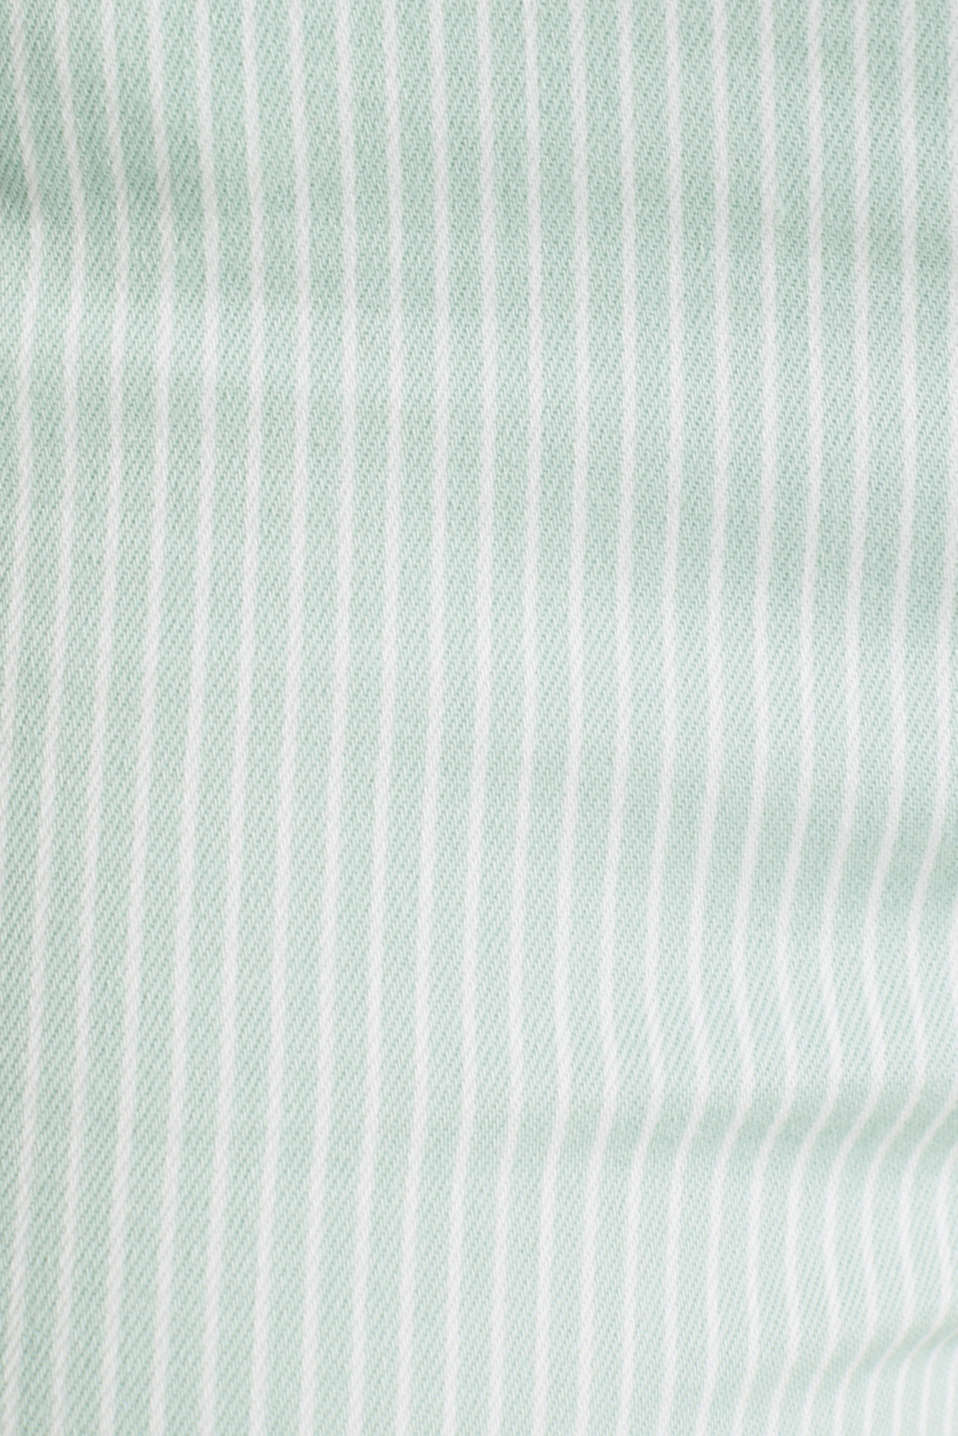 REPREVE striped Trousers, recycled, LIGHT AQUA GREEN, detail image number 4